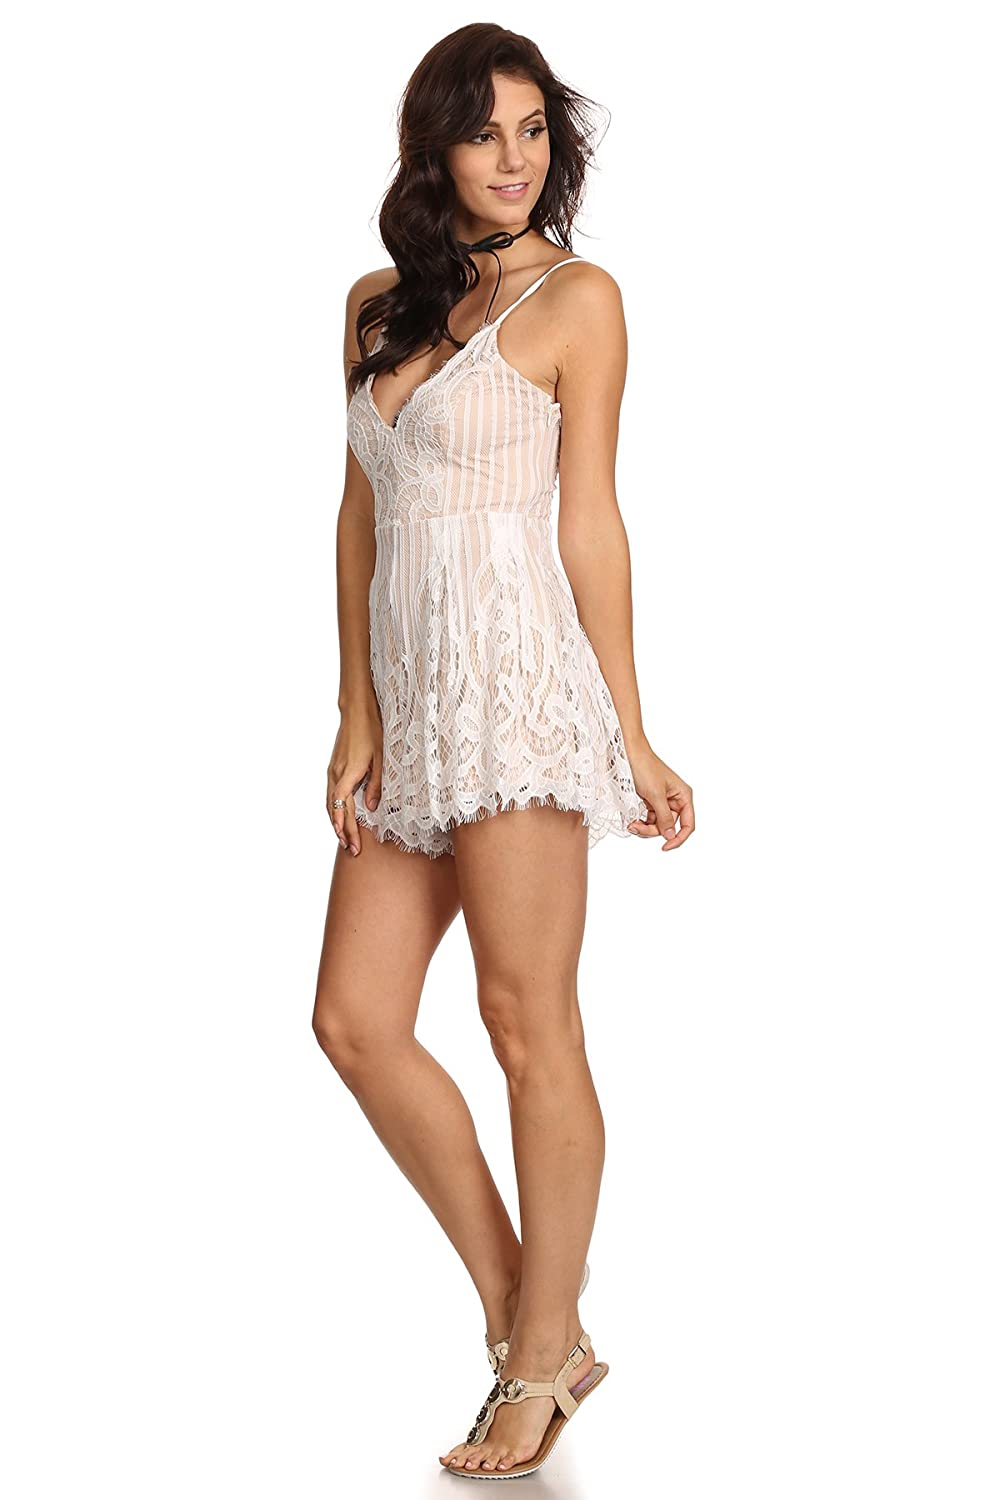 MeshMe Womens Odette - Laced Up Back Detail Floral Patterned Lace Romper